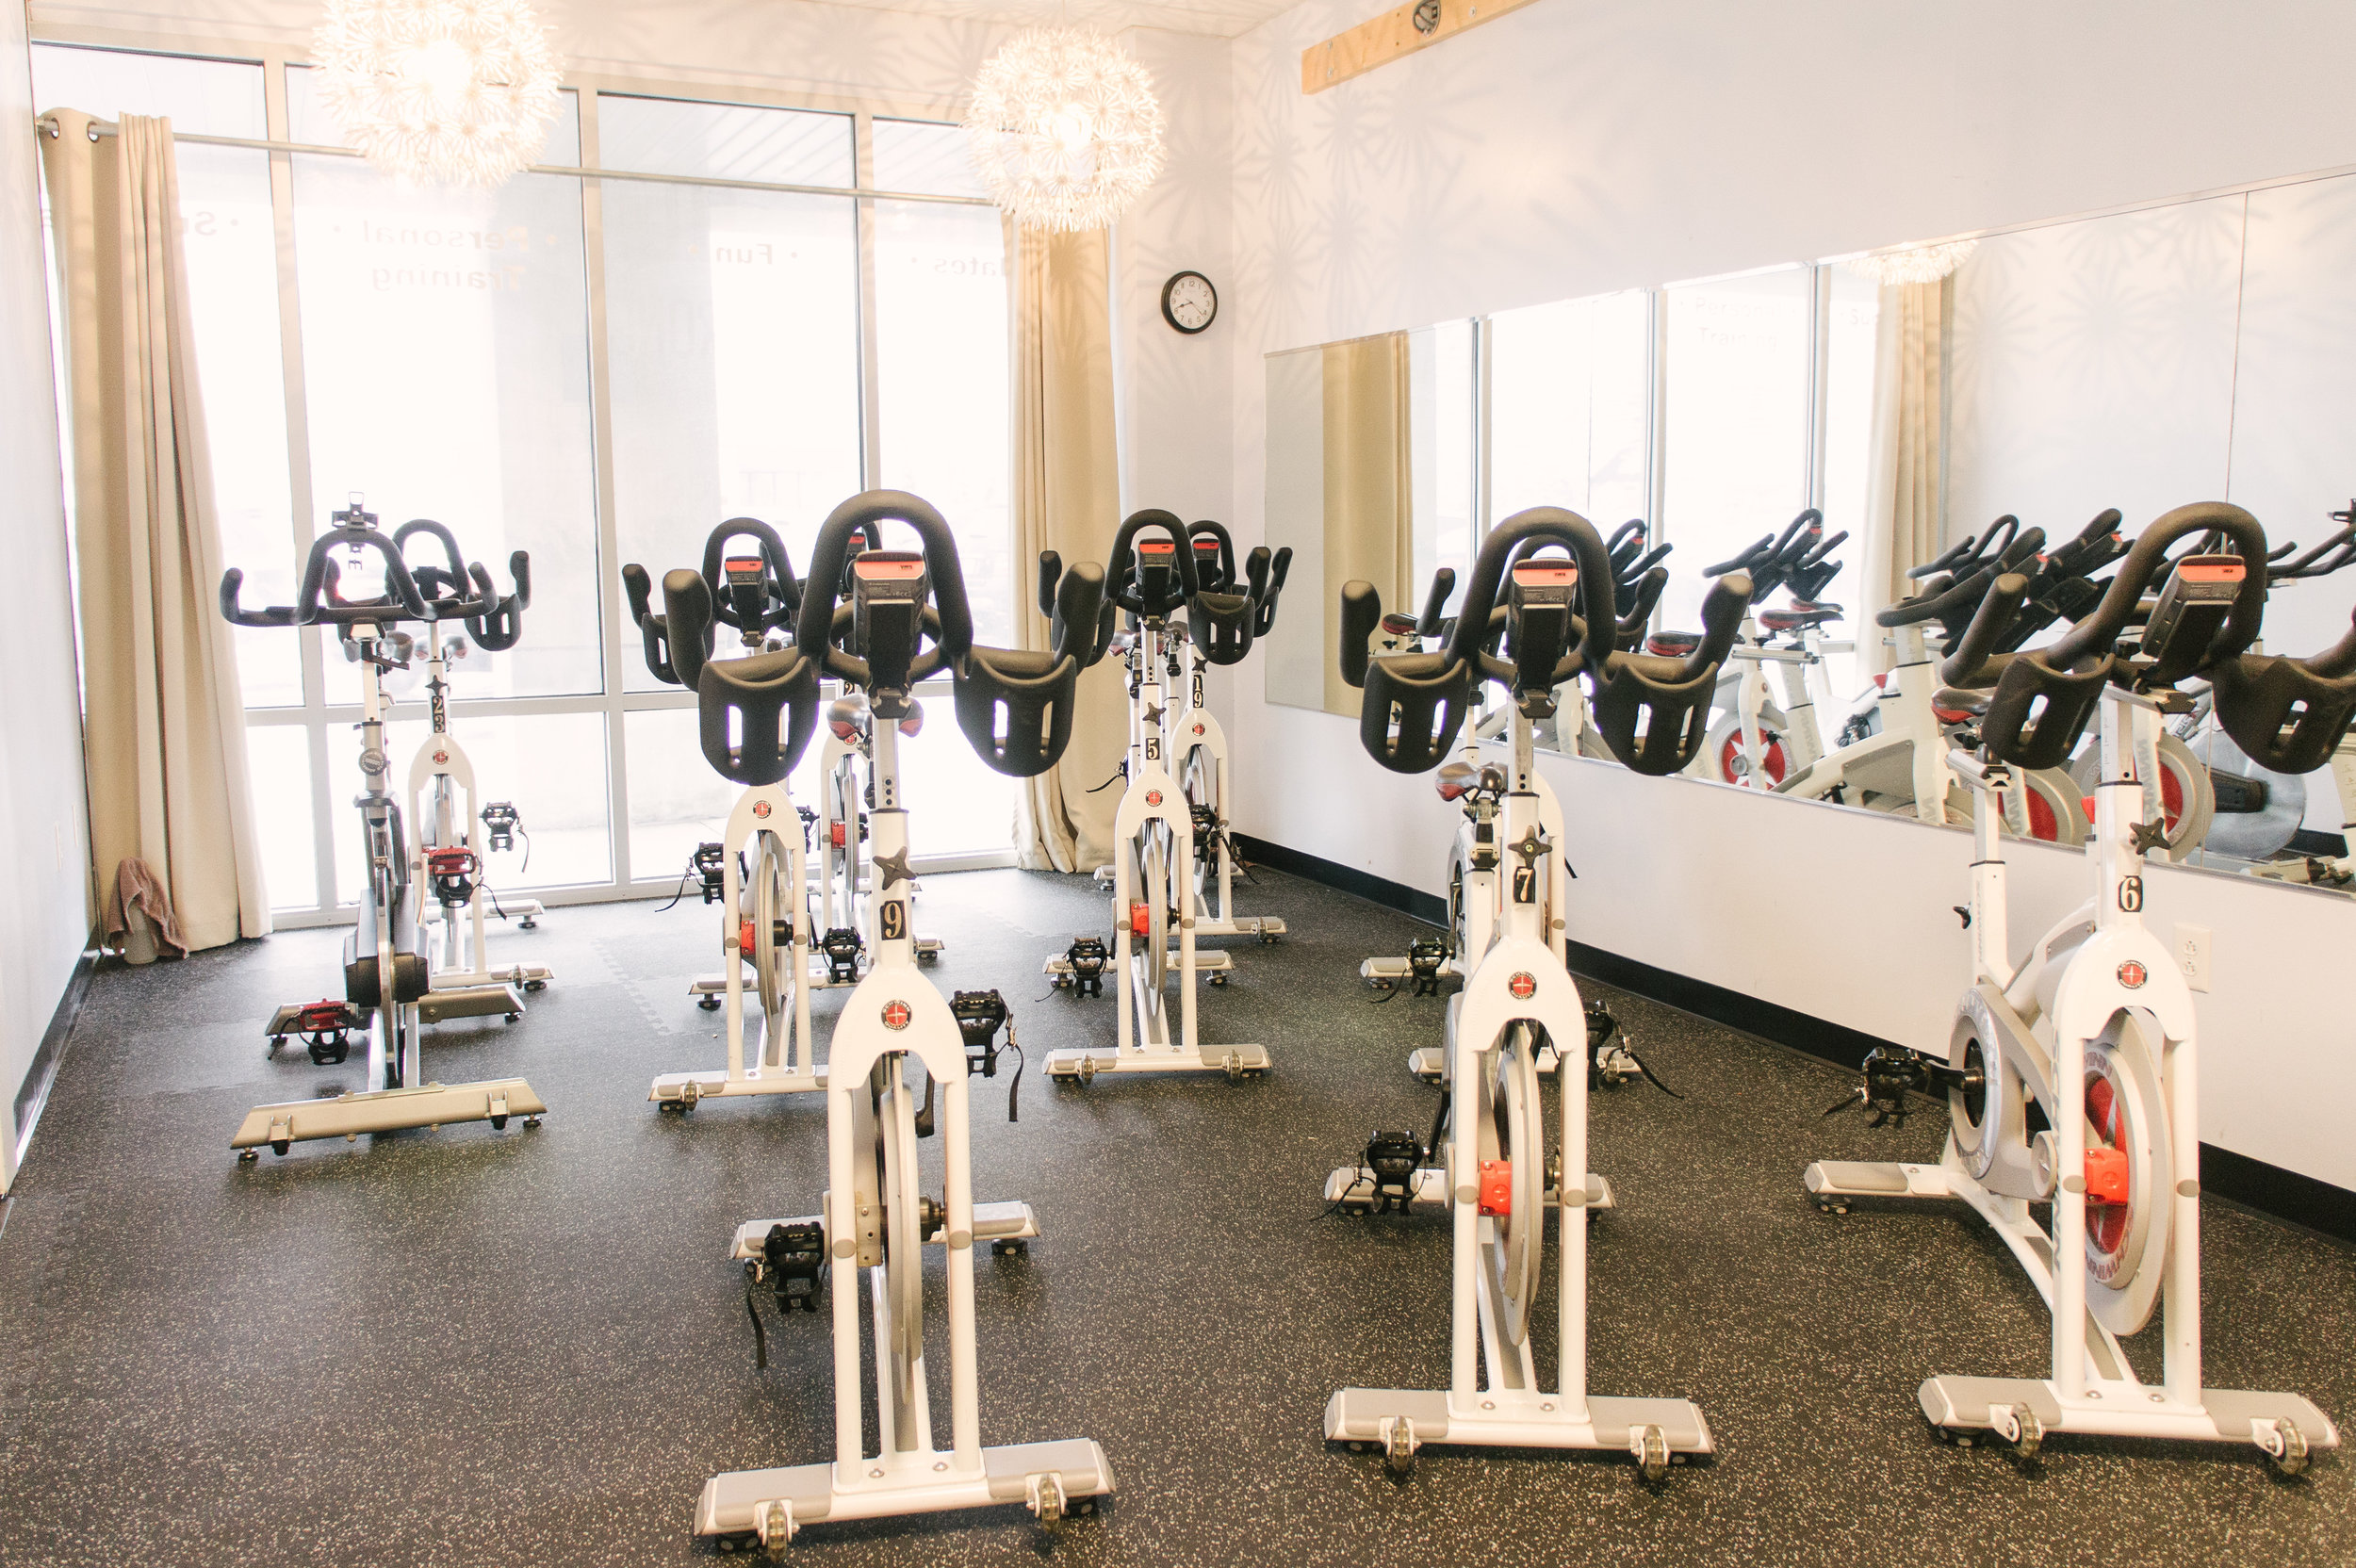 Staying healthy means something a little different for everyone. - 60+ weekly classesCycle studioFree weightsFull cardio areaPersonal and small group trainingStrength training equipment